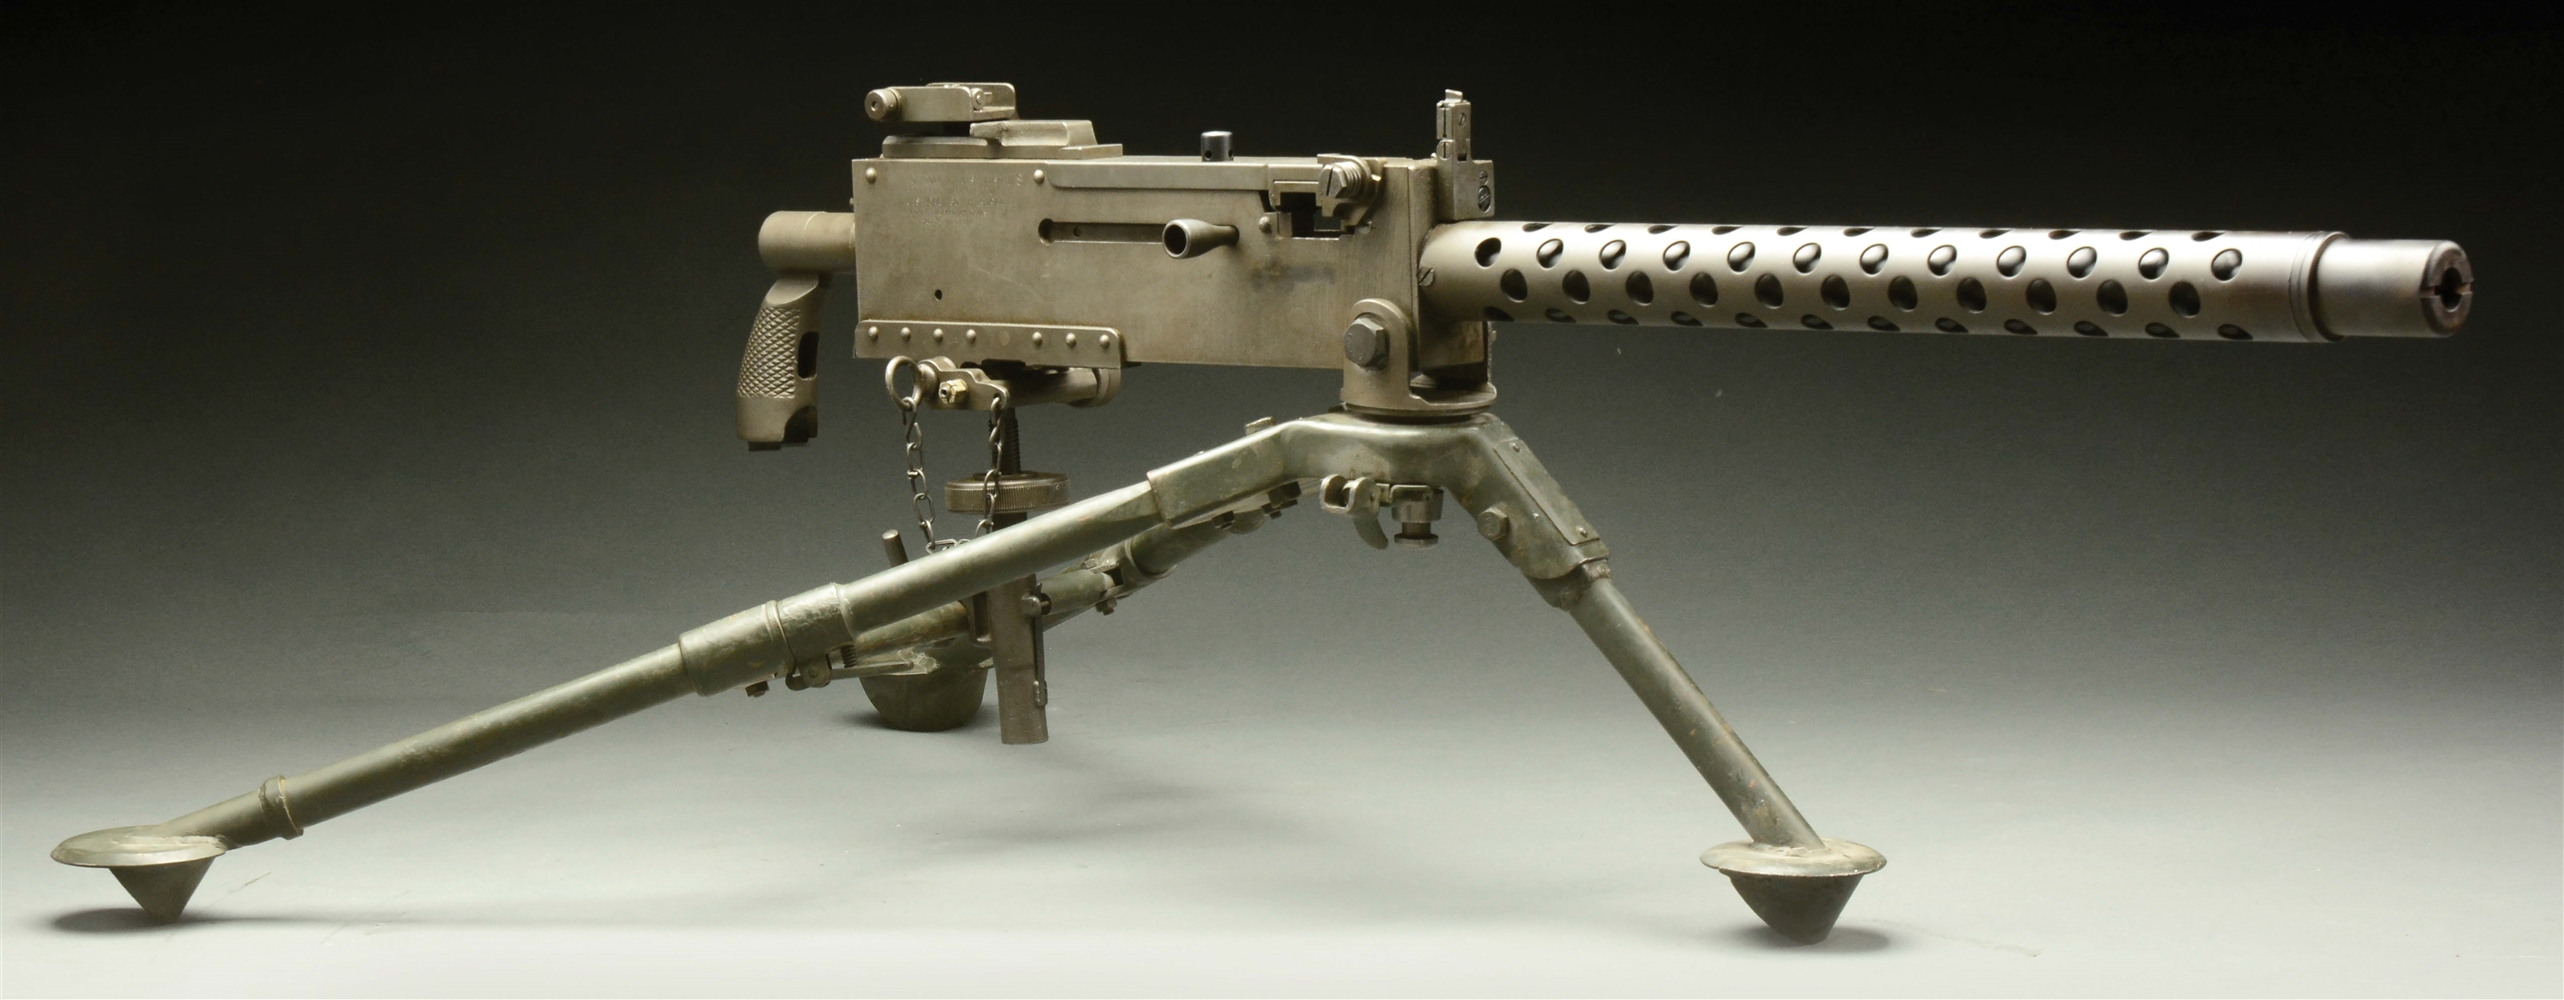 (N) EXTERMELY FINE RICHARD M. DAVIS REGISTERED SIDEPLATE BROWNING 1919A4 MACHINE GUN ON TRIPOD (FULLY TRANSFERABLE)